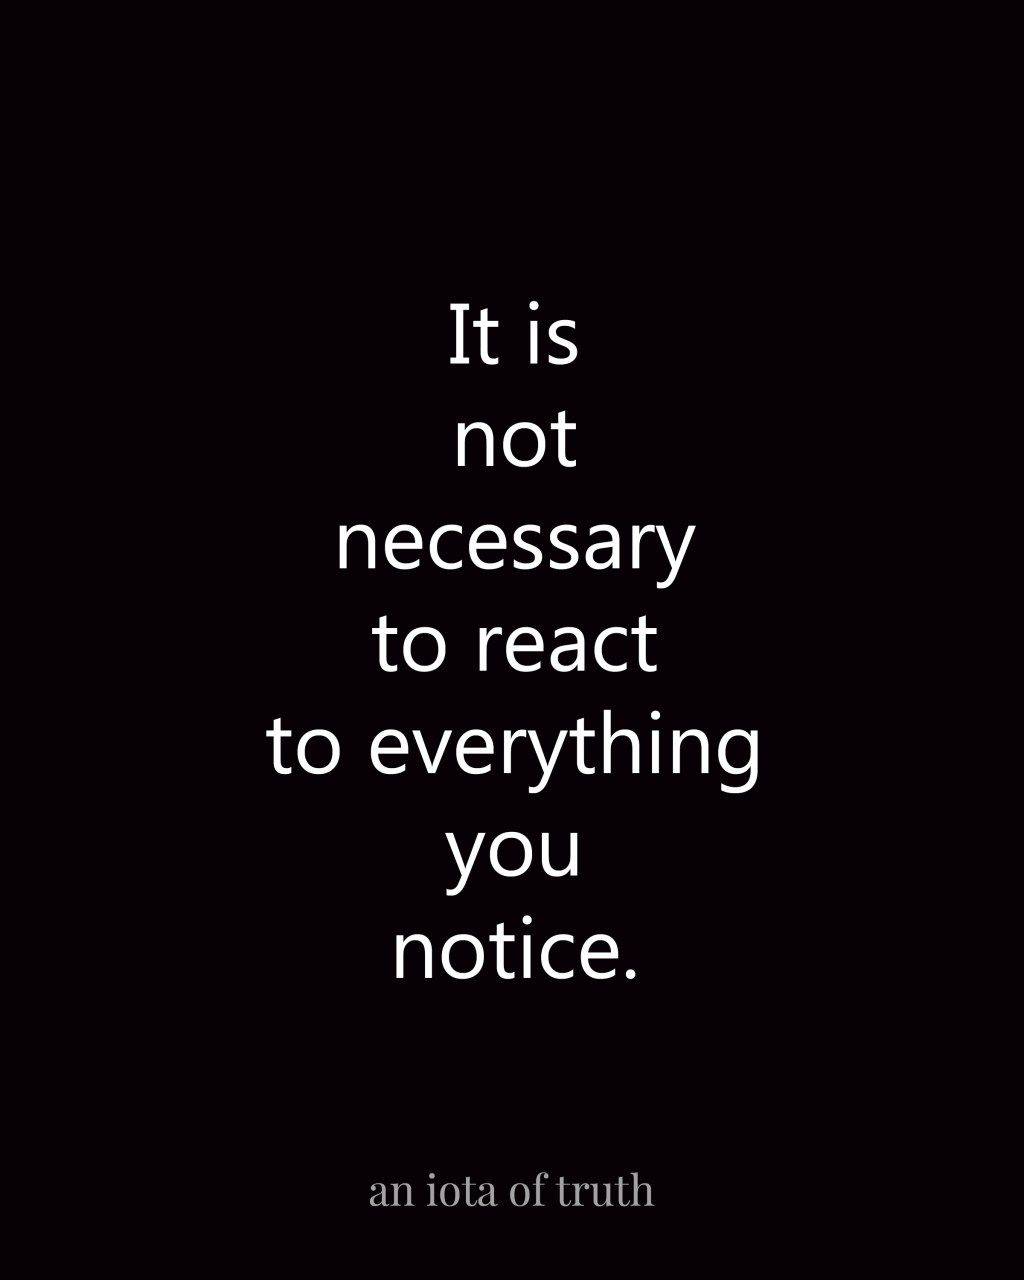 It is not necessary to react to everything you notice. - an iota of truth